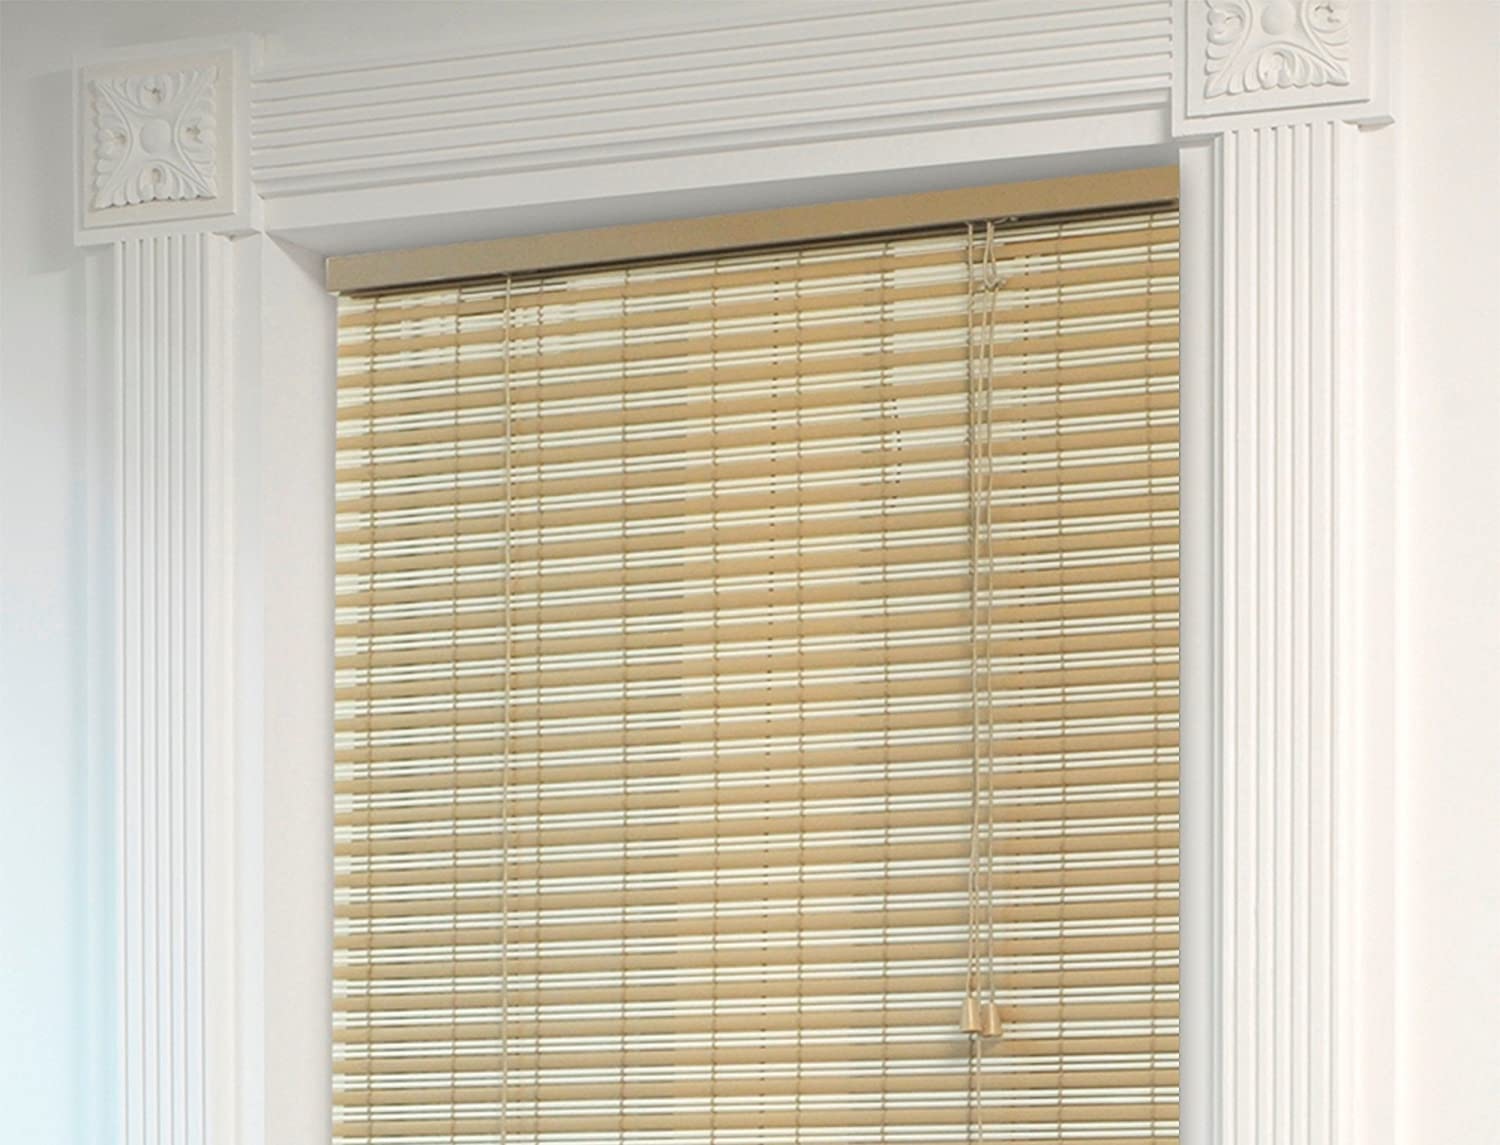 Horizontal Blinds Online Shopping For Clothing Shoes